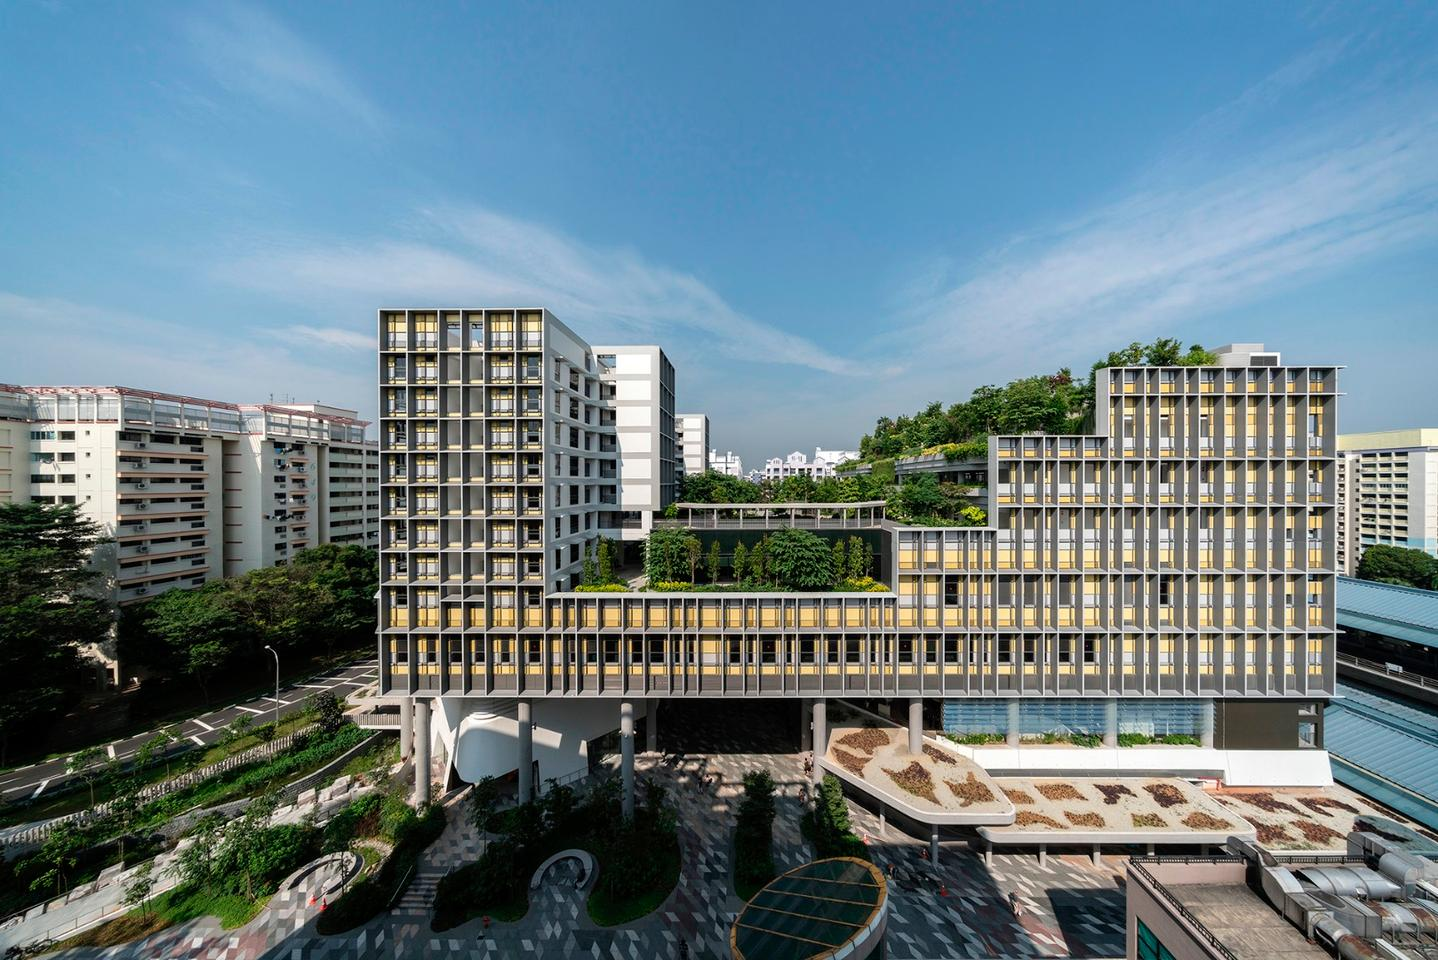 Greenery Covered Retirement Village Declared World Building Of The Year